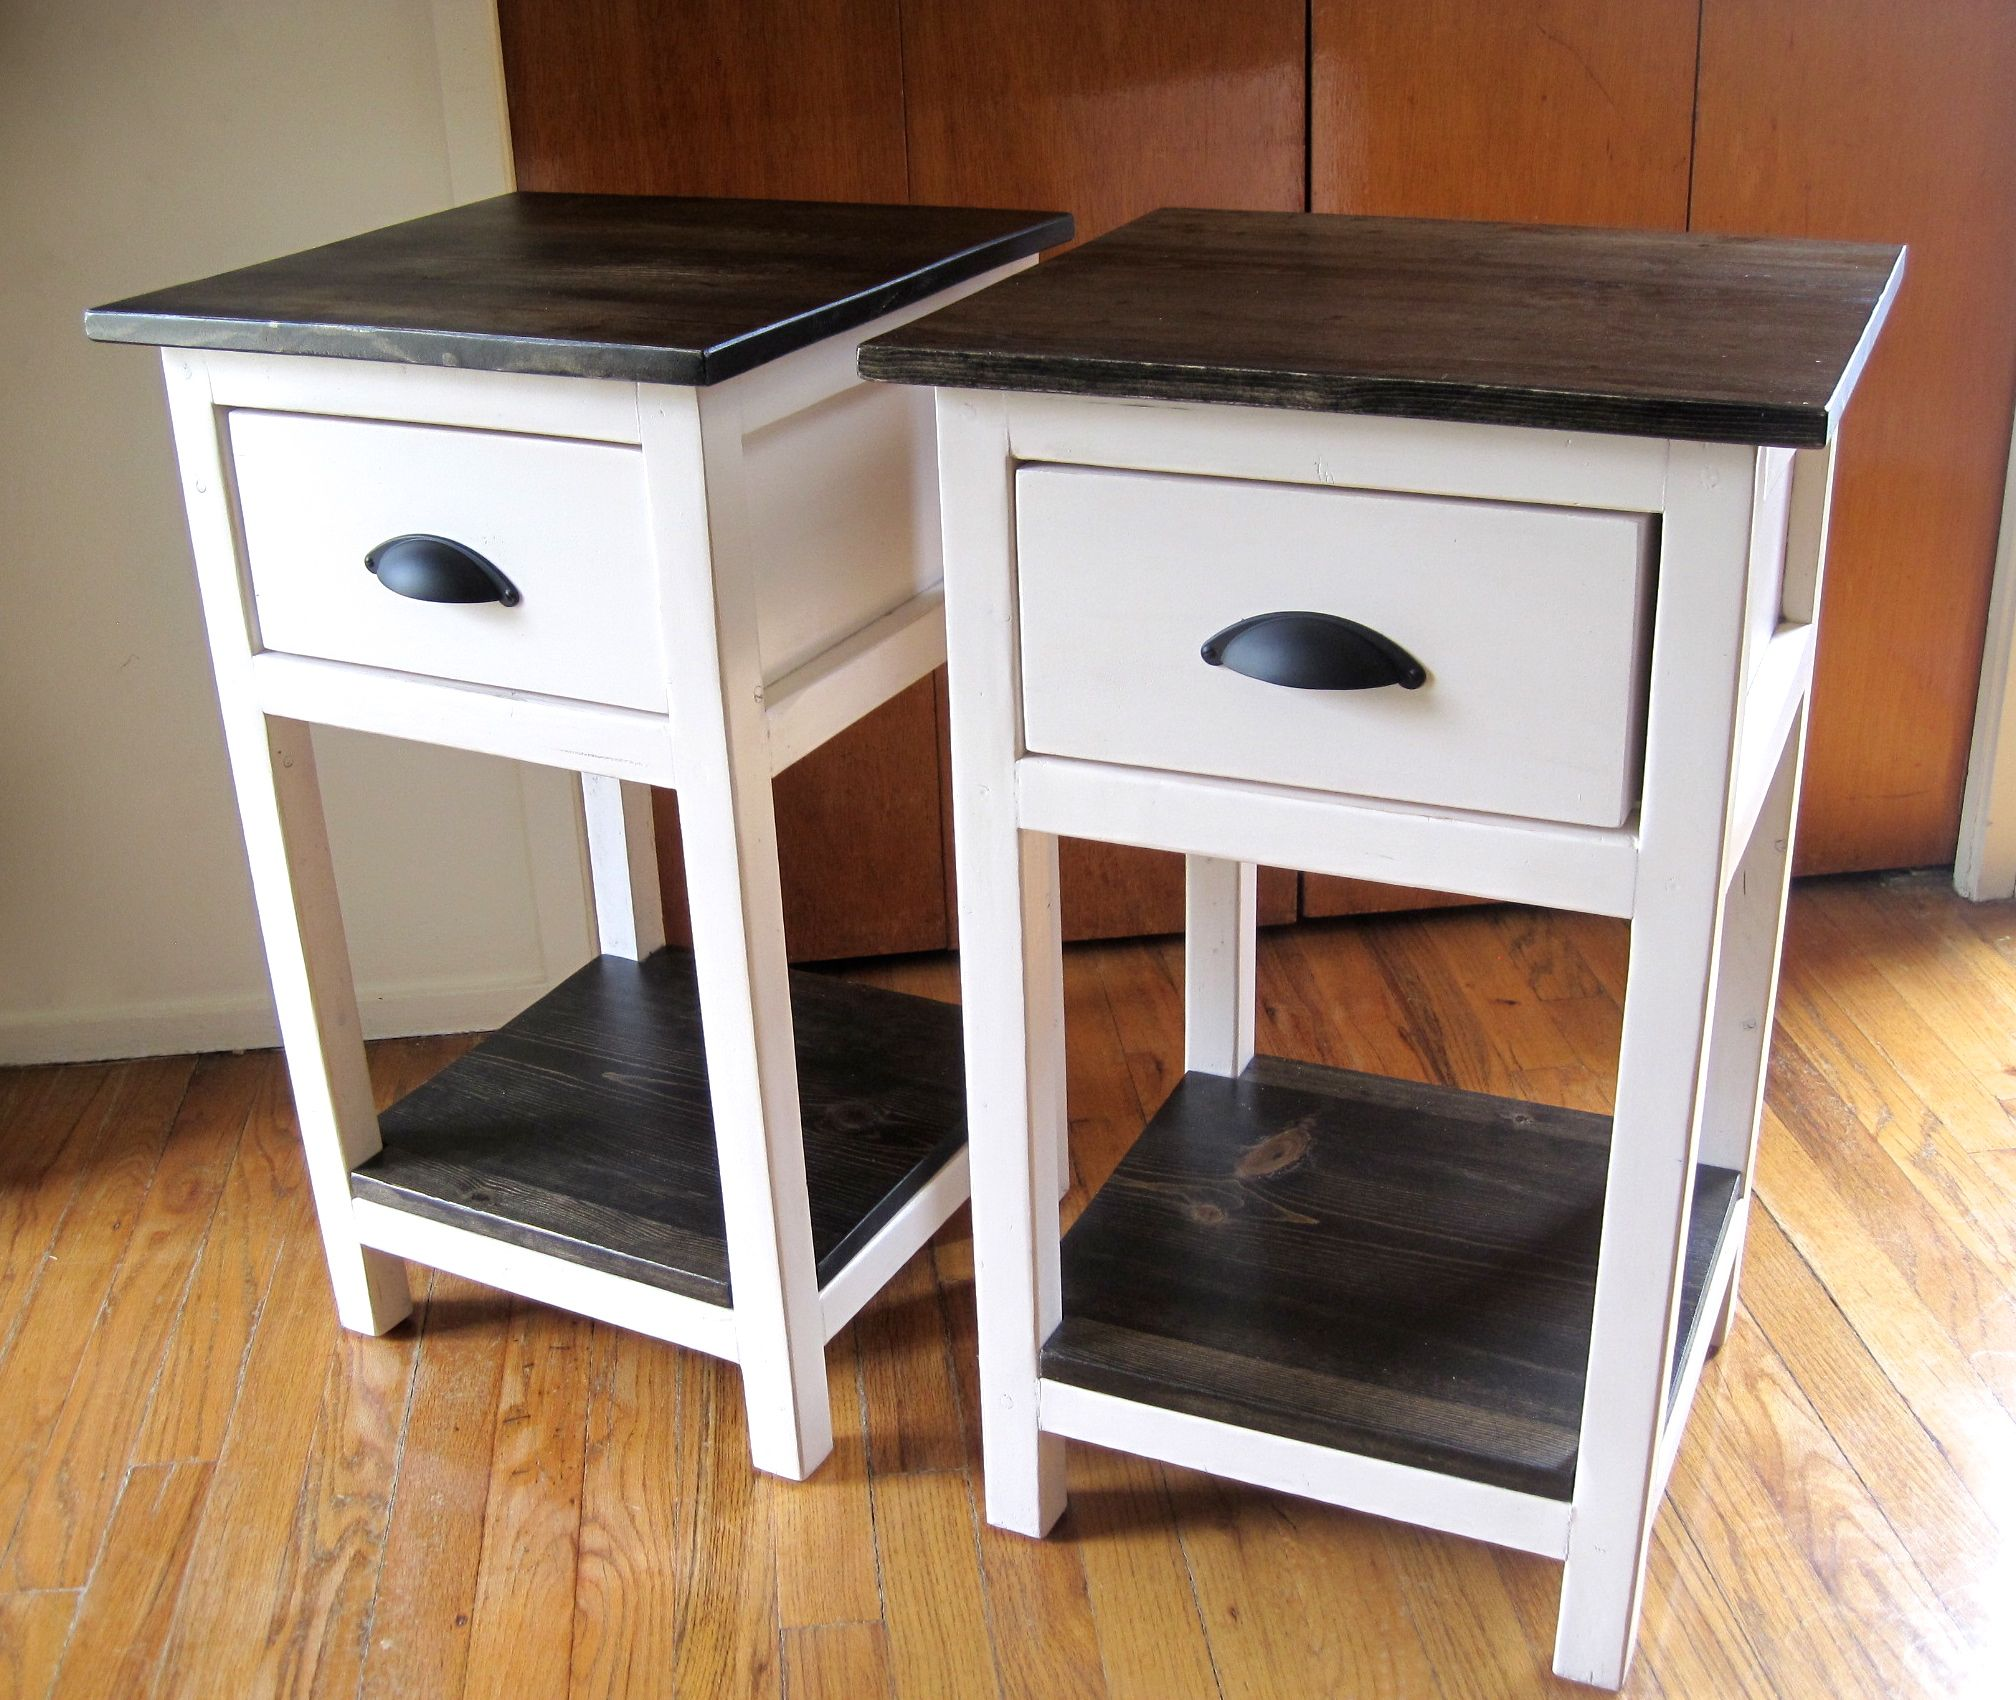 Diy End Tables Plans Ana White Build A Mini Farmhouse Bedside Table Plans